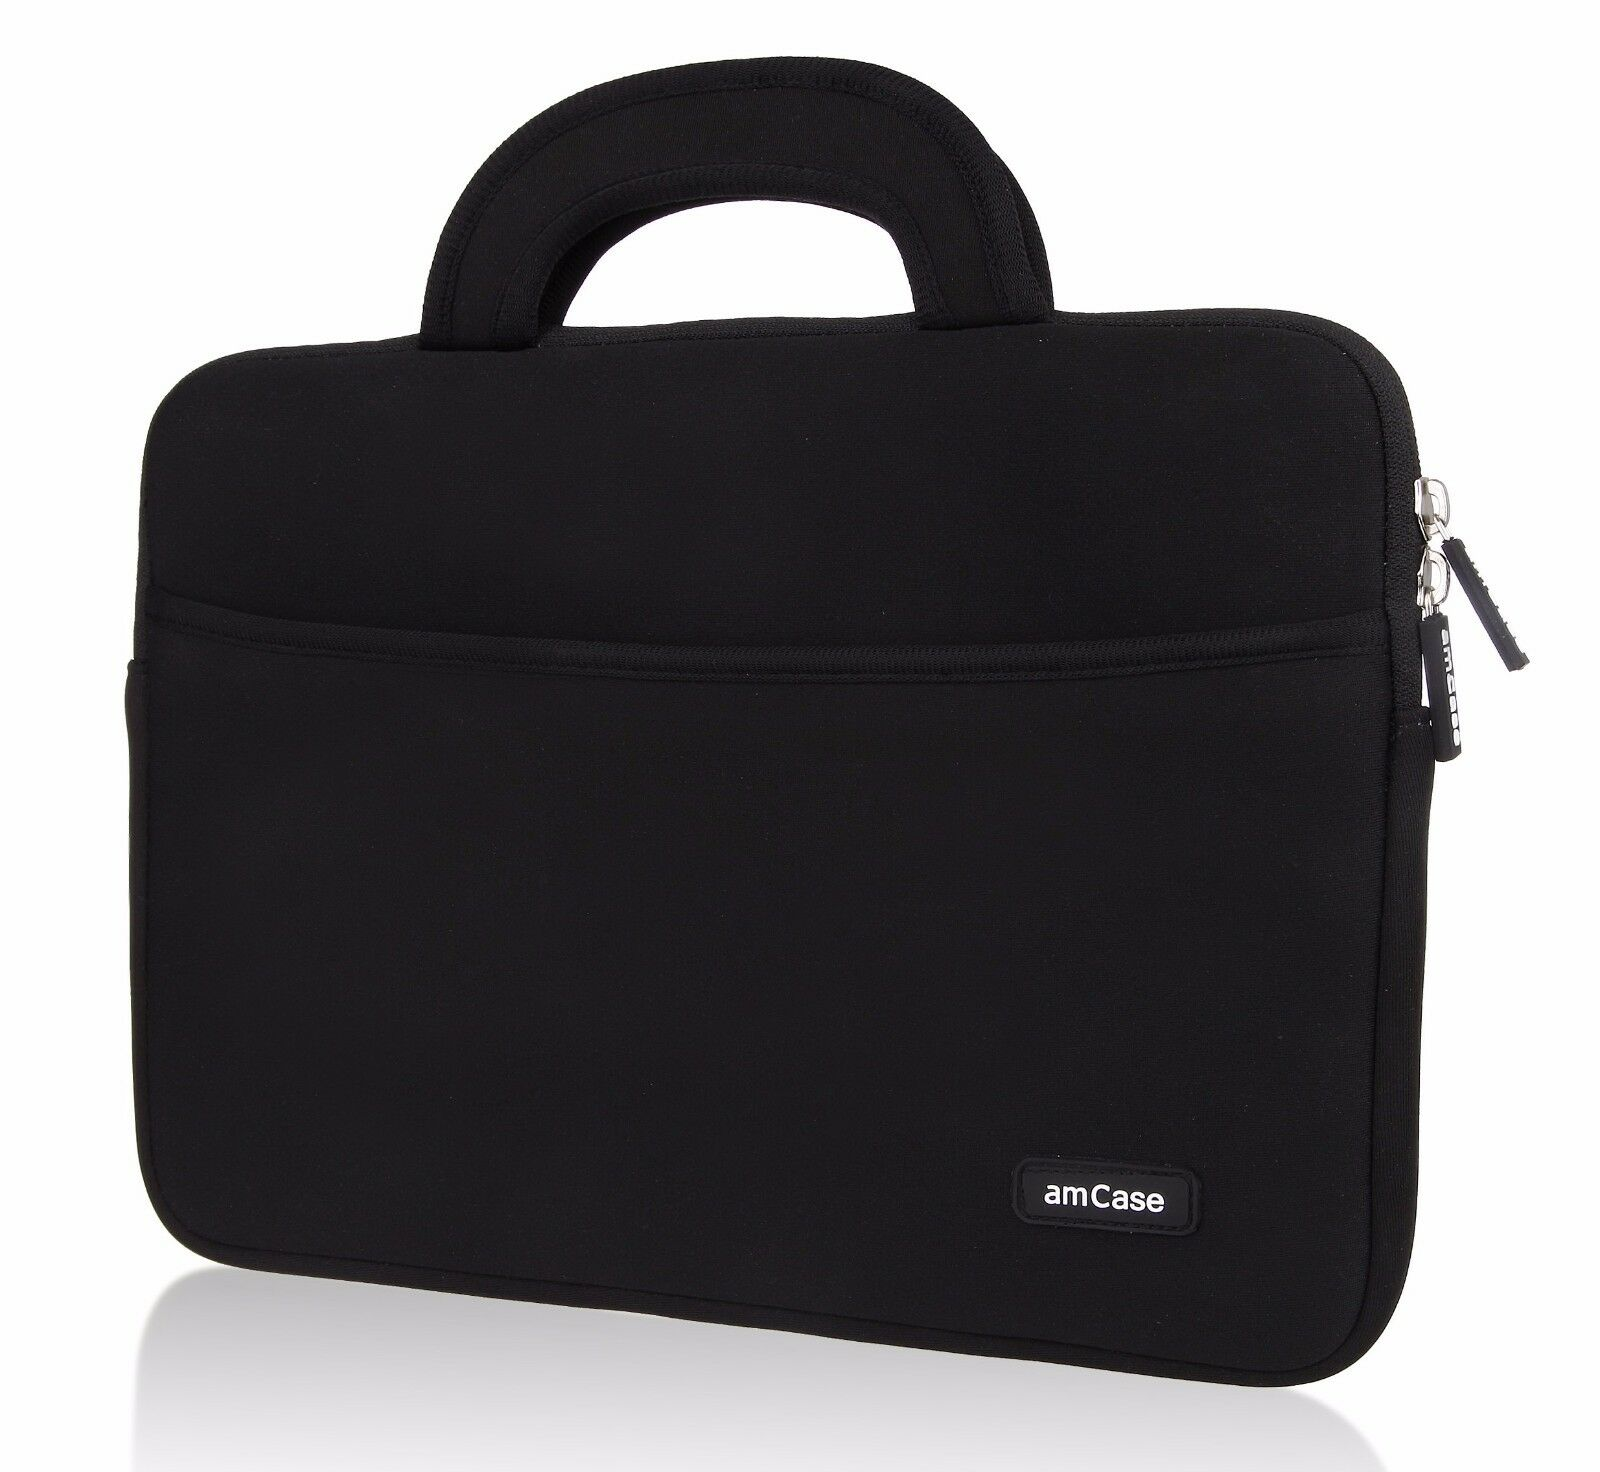 amCase Chromebook Case, 11.6 to 12 Inch Laptop Sleeve Case f